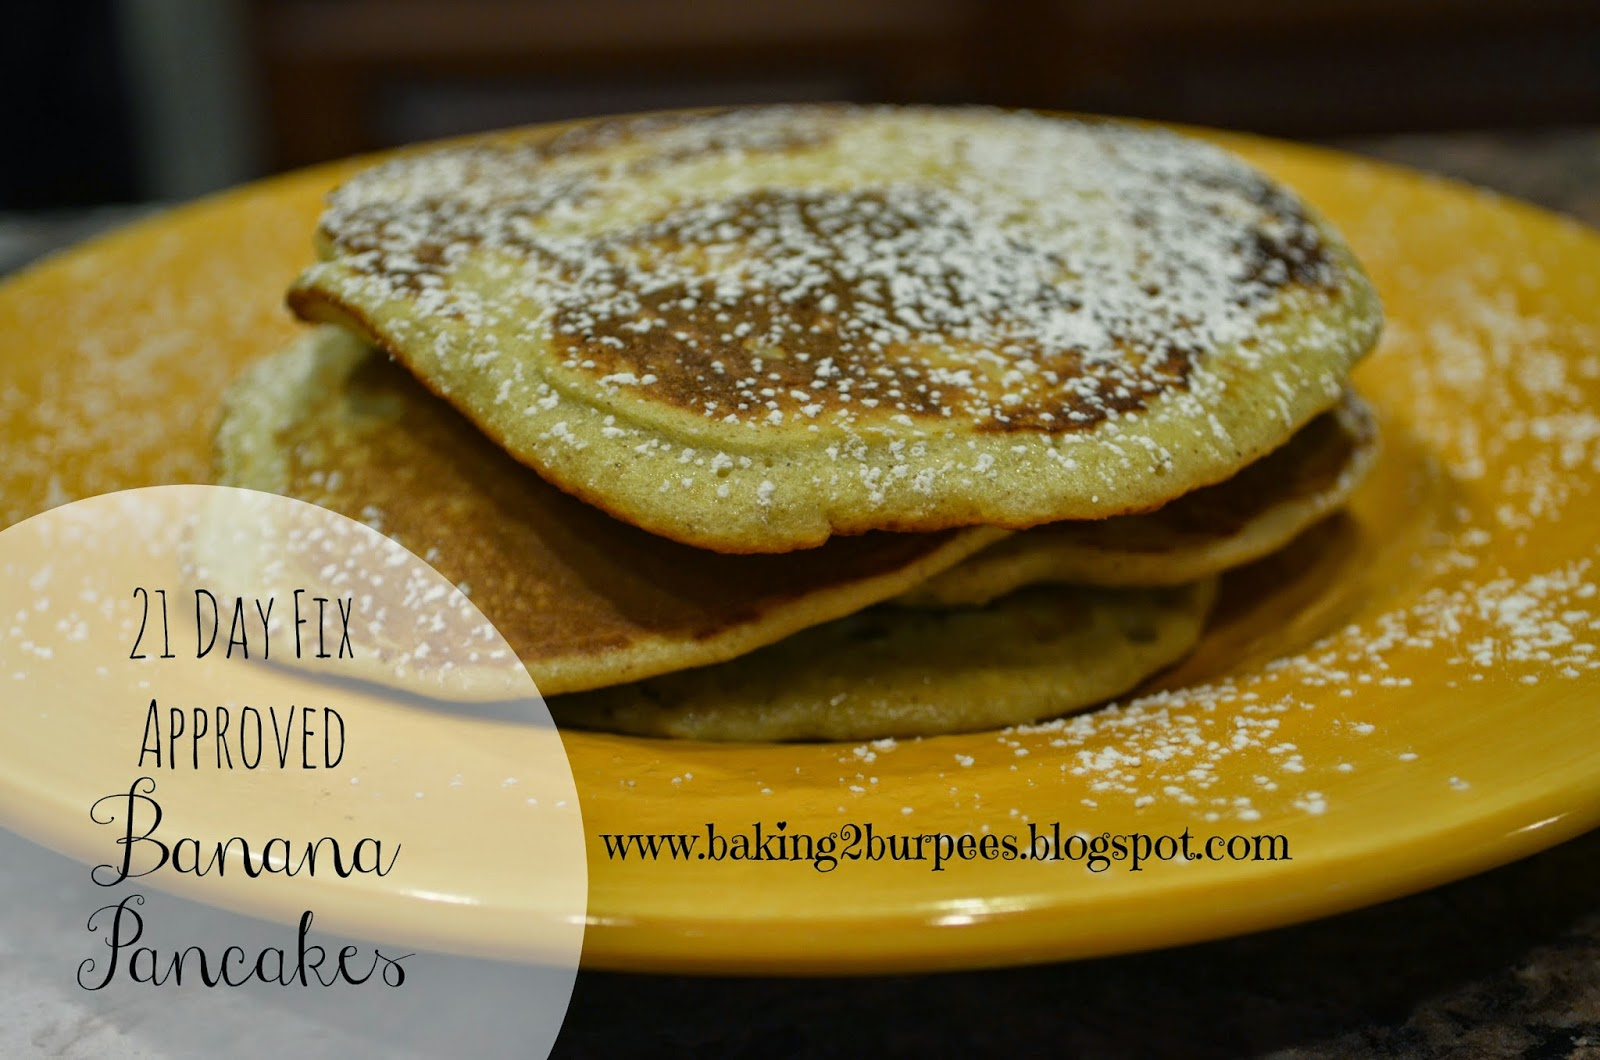 Erin Traill, diamond beachbody coach, banana pancakes, healthy recipe, 21 day fix approved recipe, healthy mom, fit mom, Pittsburgh, nurse